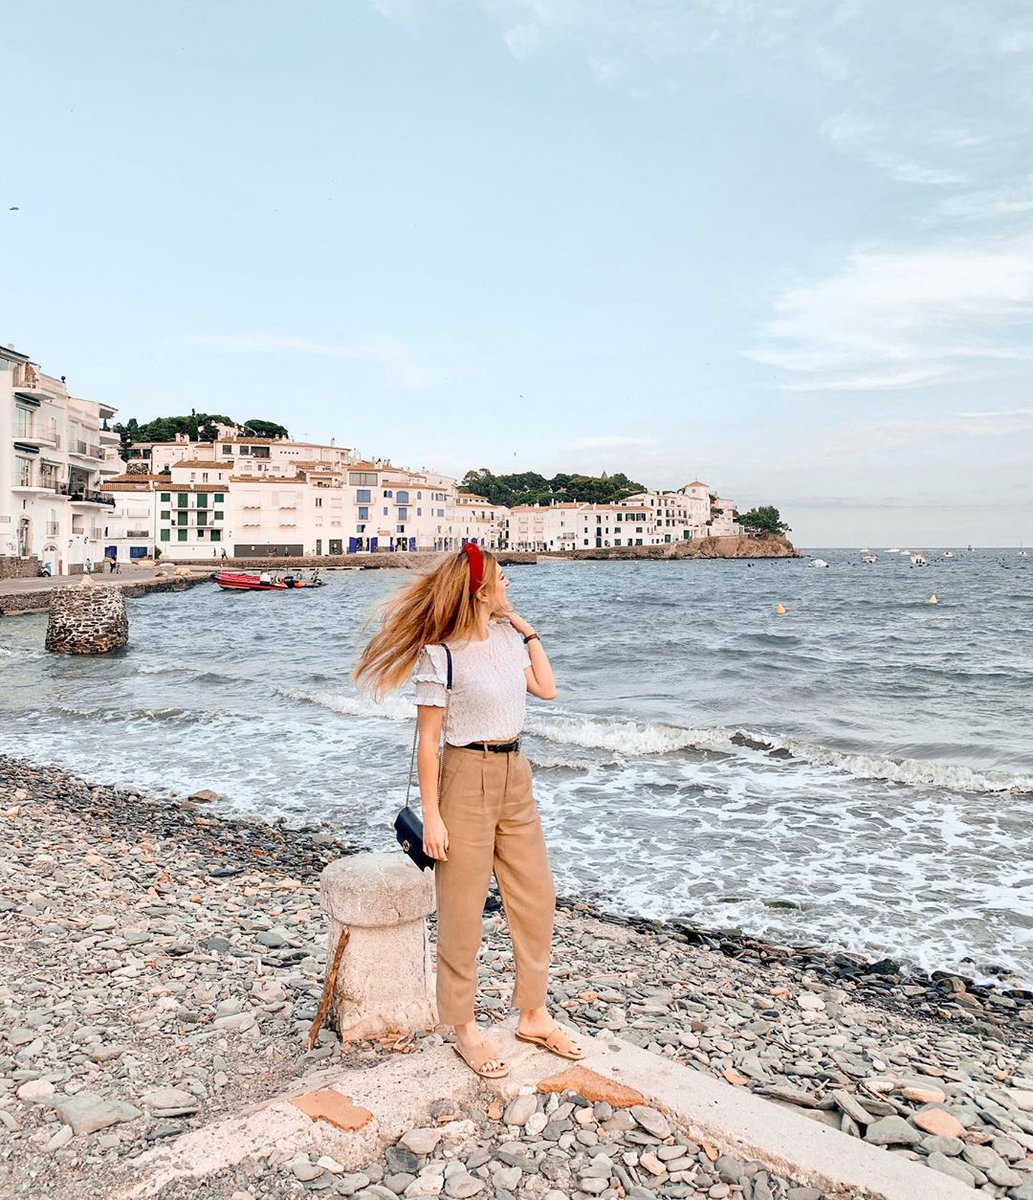 There's nothing more soothing than the sound of the ocean 🌊. @lapietx took this photo in Spain, and her next journey will be to the Canary Islands!   Plan your first trip to the beach with our Open Travel Index, here: 👉 https://t.co/sCoRbujlto https://t.co/YD6kSp2XnK